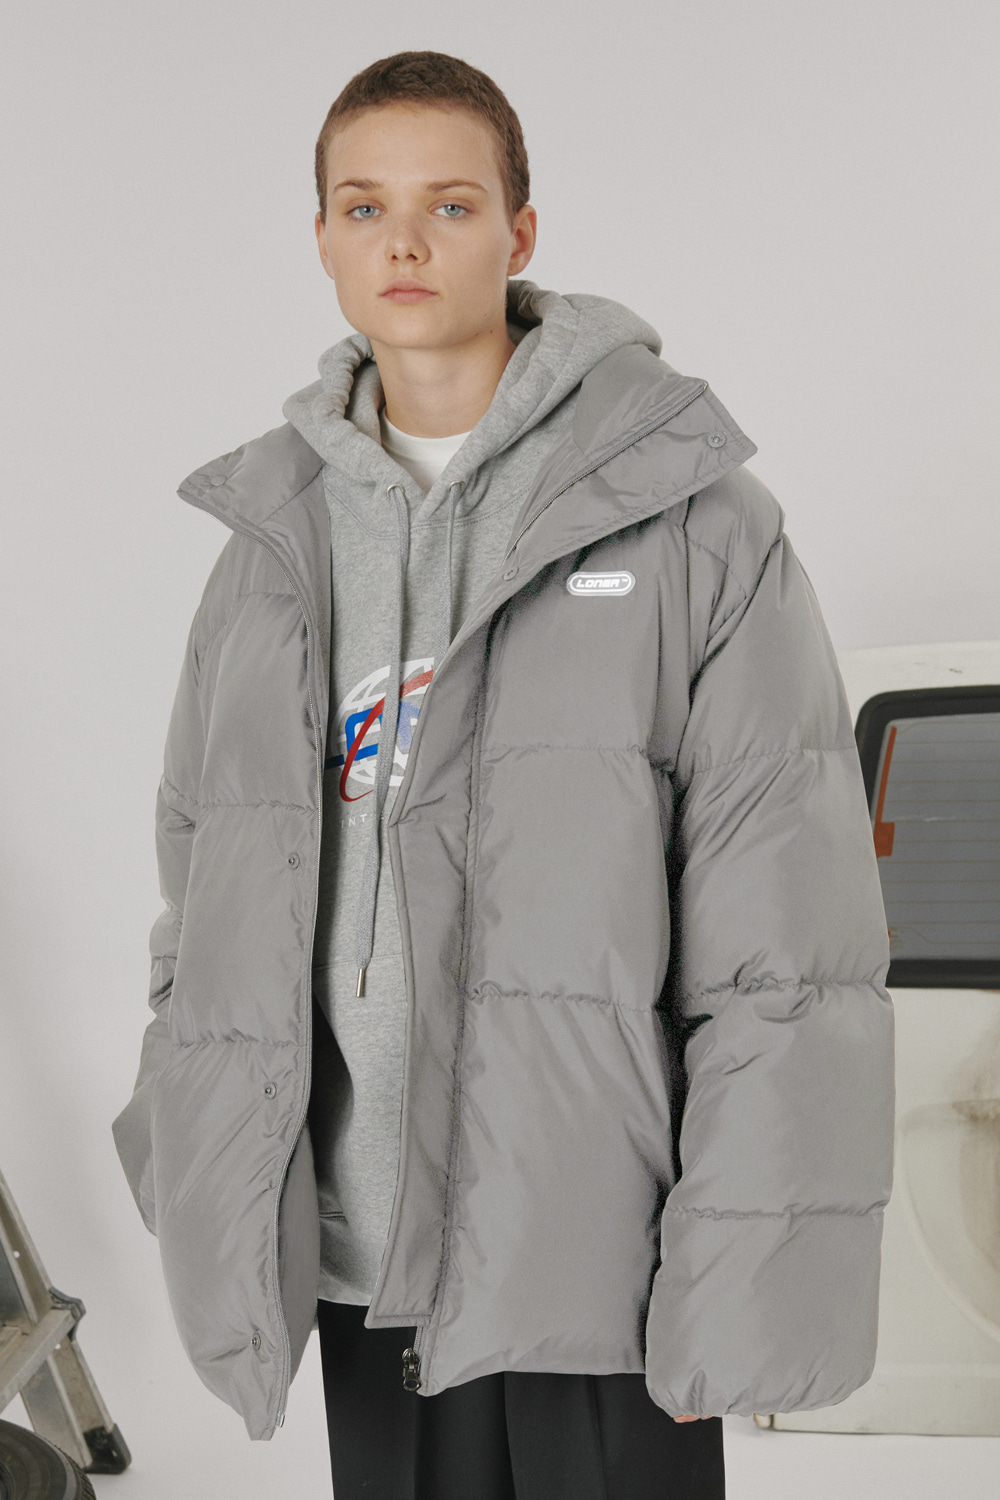 [LONER SEASON OFF SALE] Loner half padding_gray (기간한정 01.17 - 01.23)